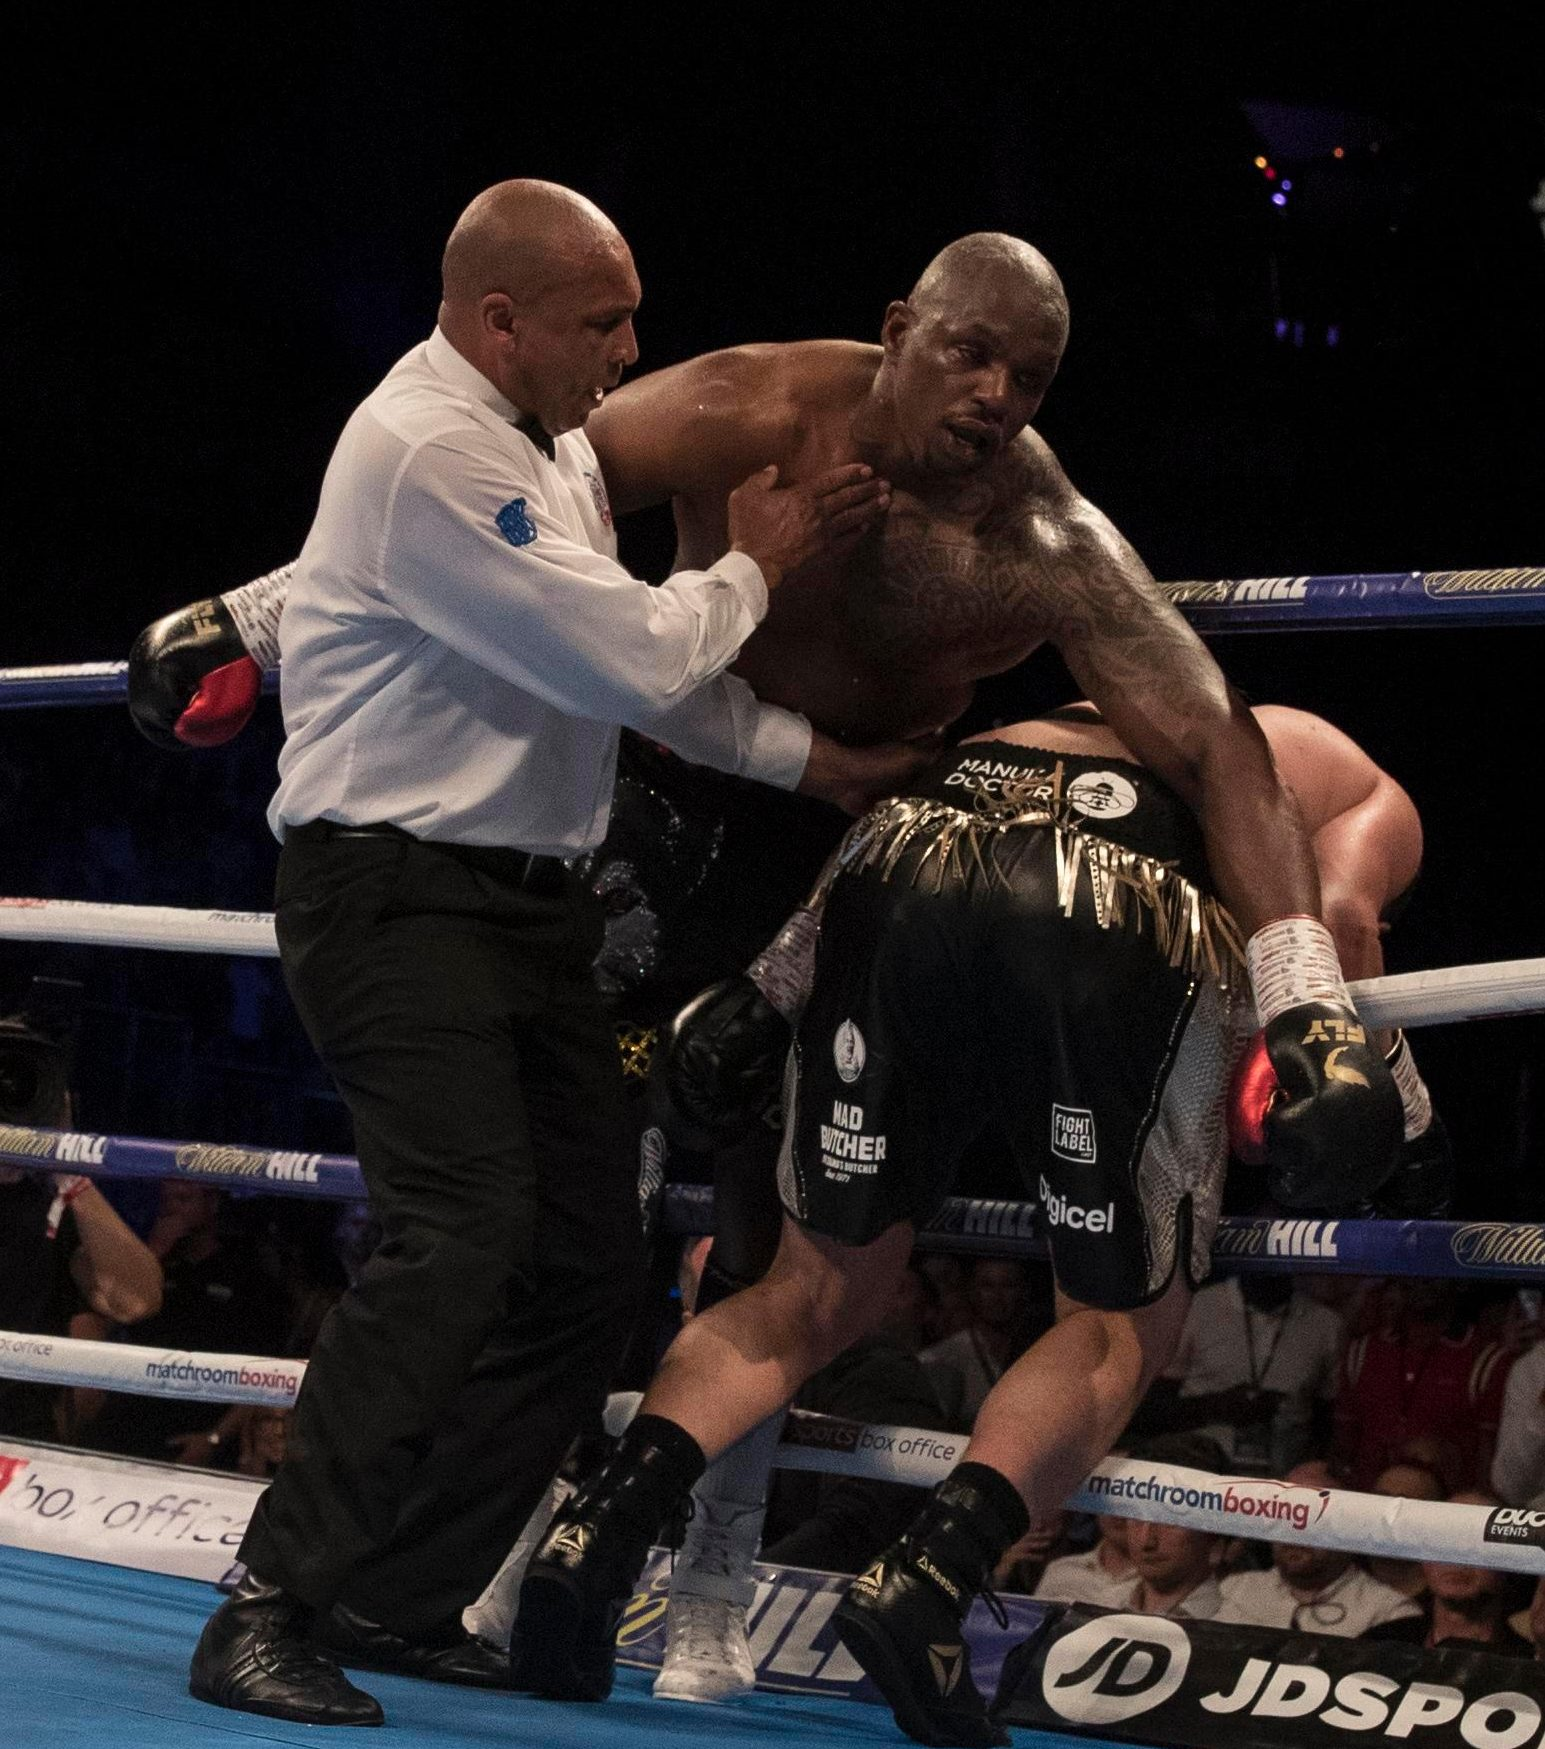 Both fighters were out on their feet towards the end of the scrap